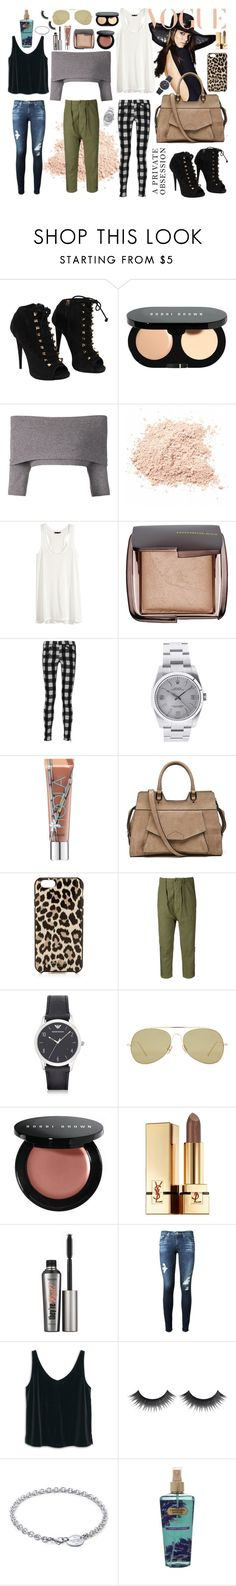 Designer Clothes, Shoes & Bags for Women Schumacher, Hourglass, Giuseppe Zanotti, Bobbi Brown, Kendall, Rolex, Benefit, Kate Spade, Lost